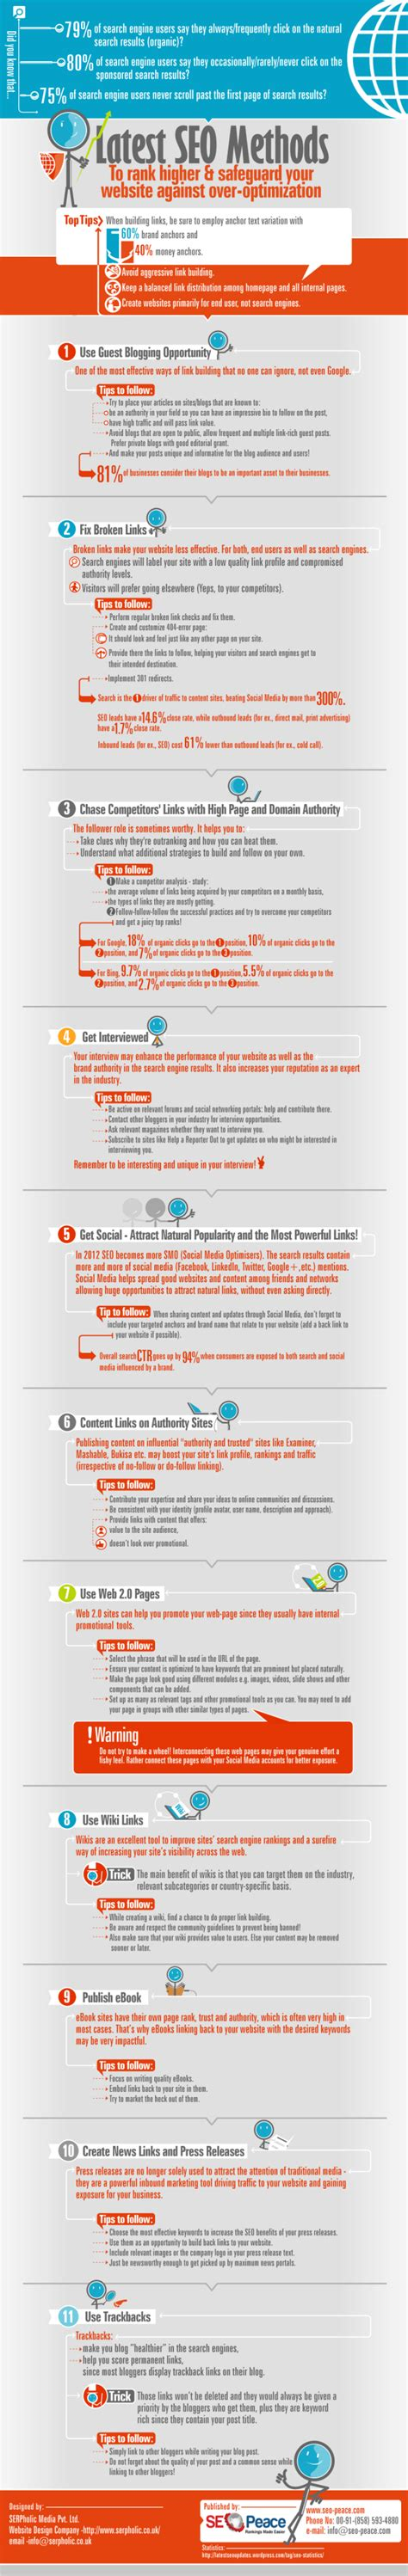 Infographic Current Thinking Seo Methods